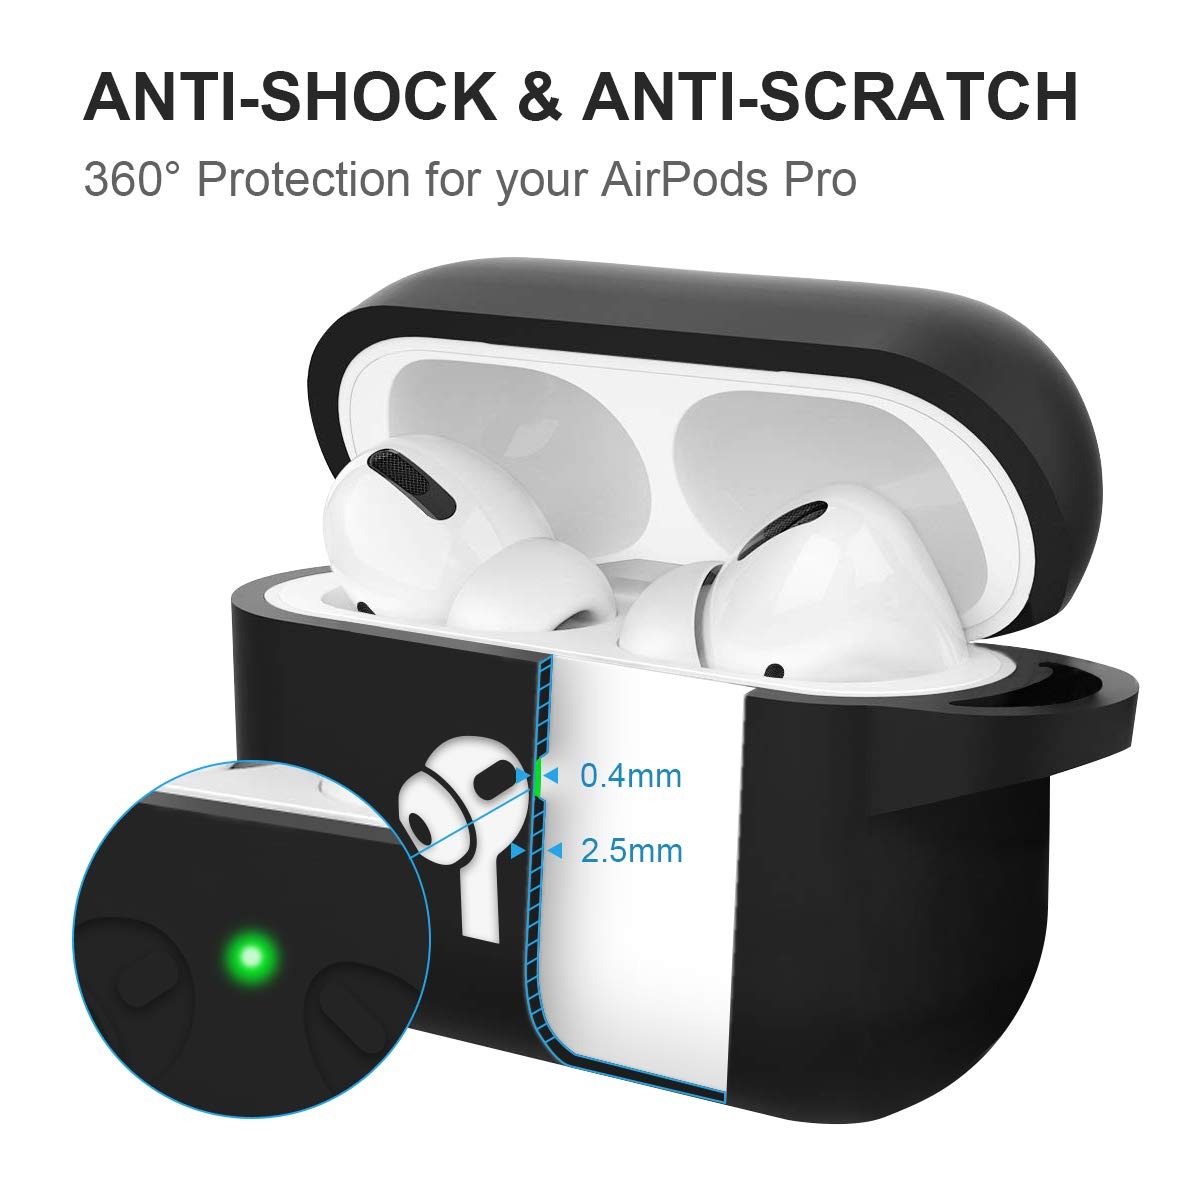 AirPods Pro Case Cover, 2.5MM Thick Silicone Shockproof Protective Cover with Visible Front LED Compatible with Wireless Charging AirPods Pro, Black